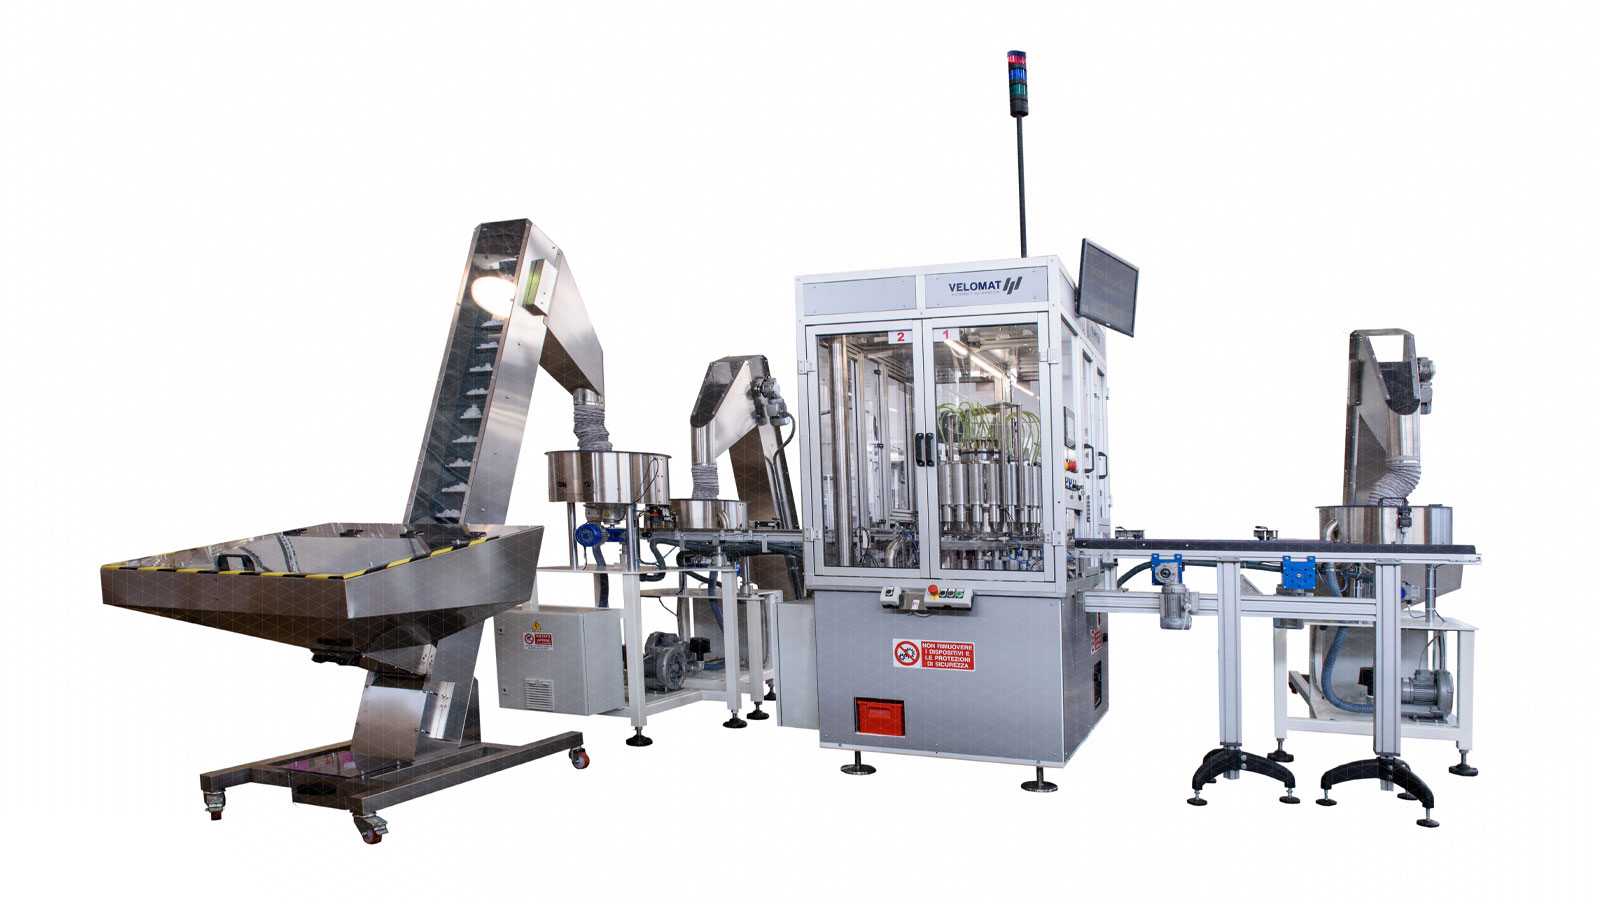 Continuous Motion Technology Velomat